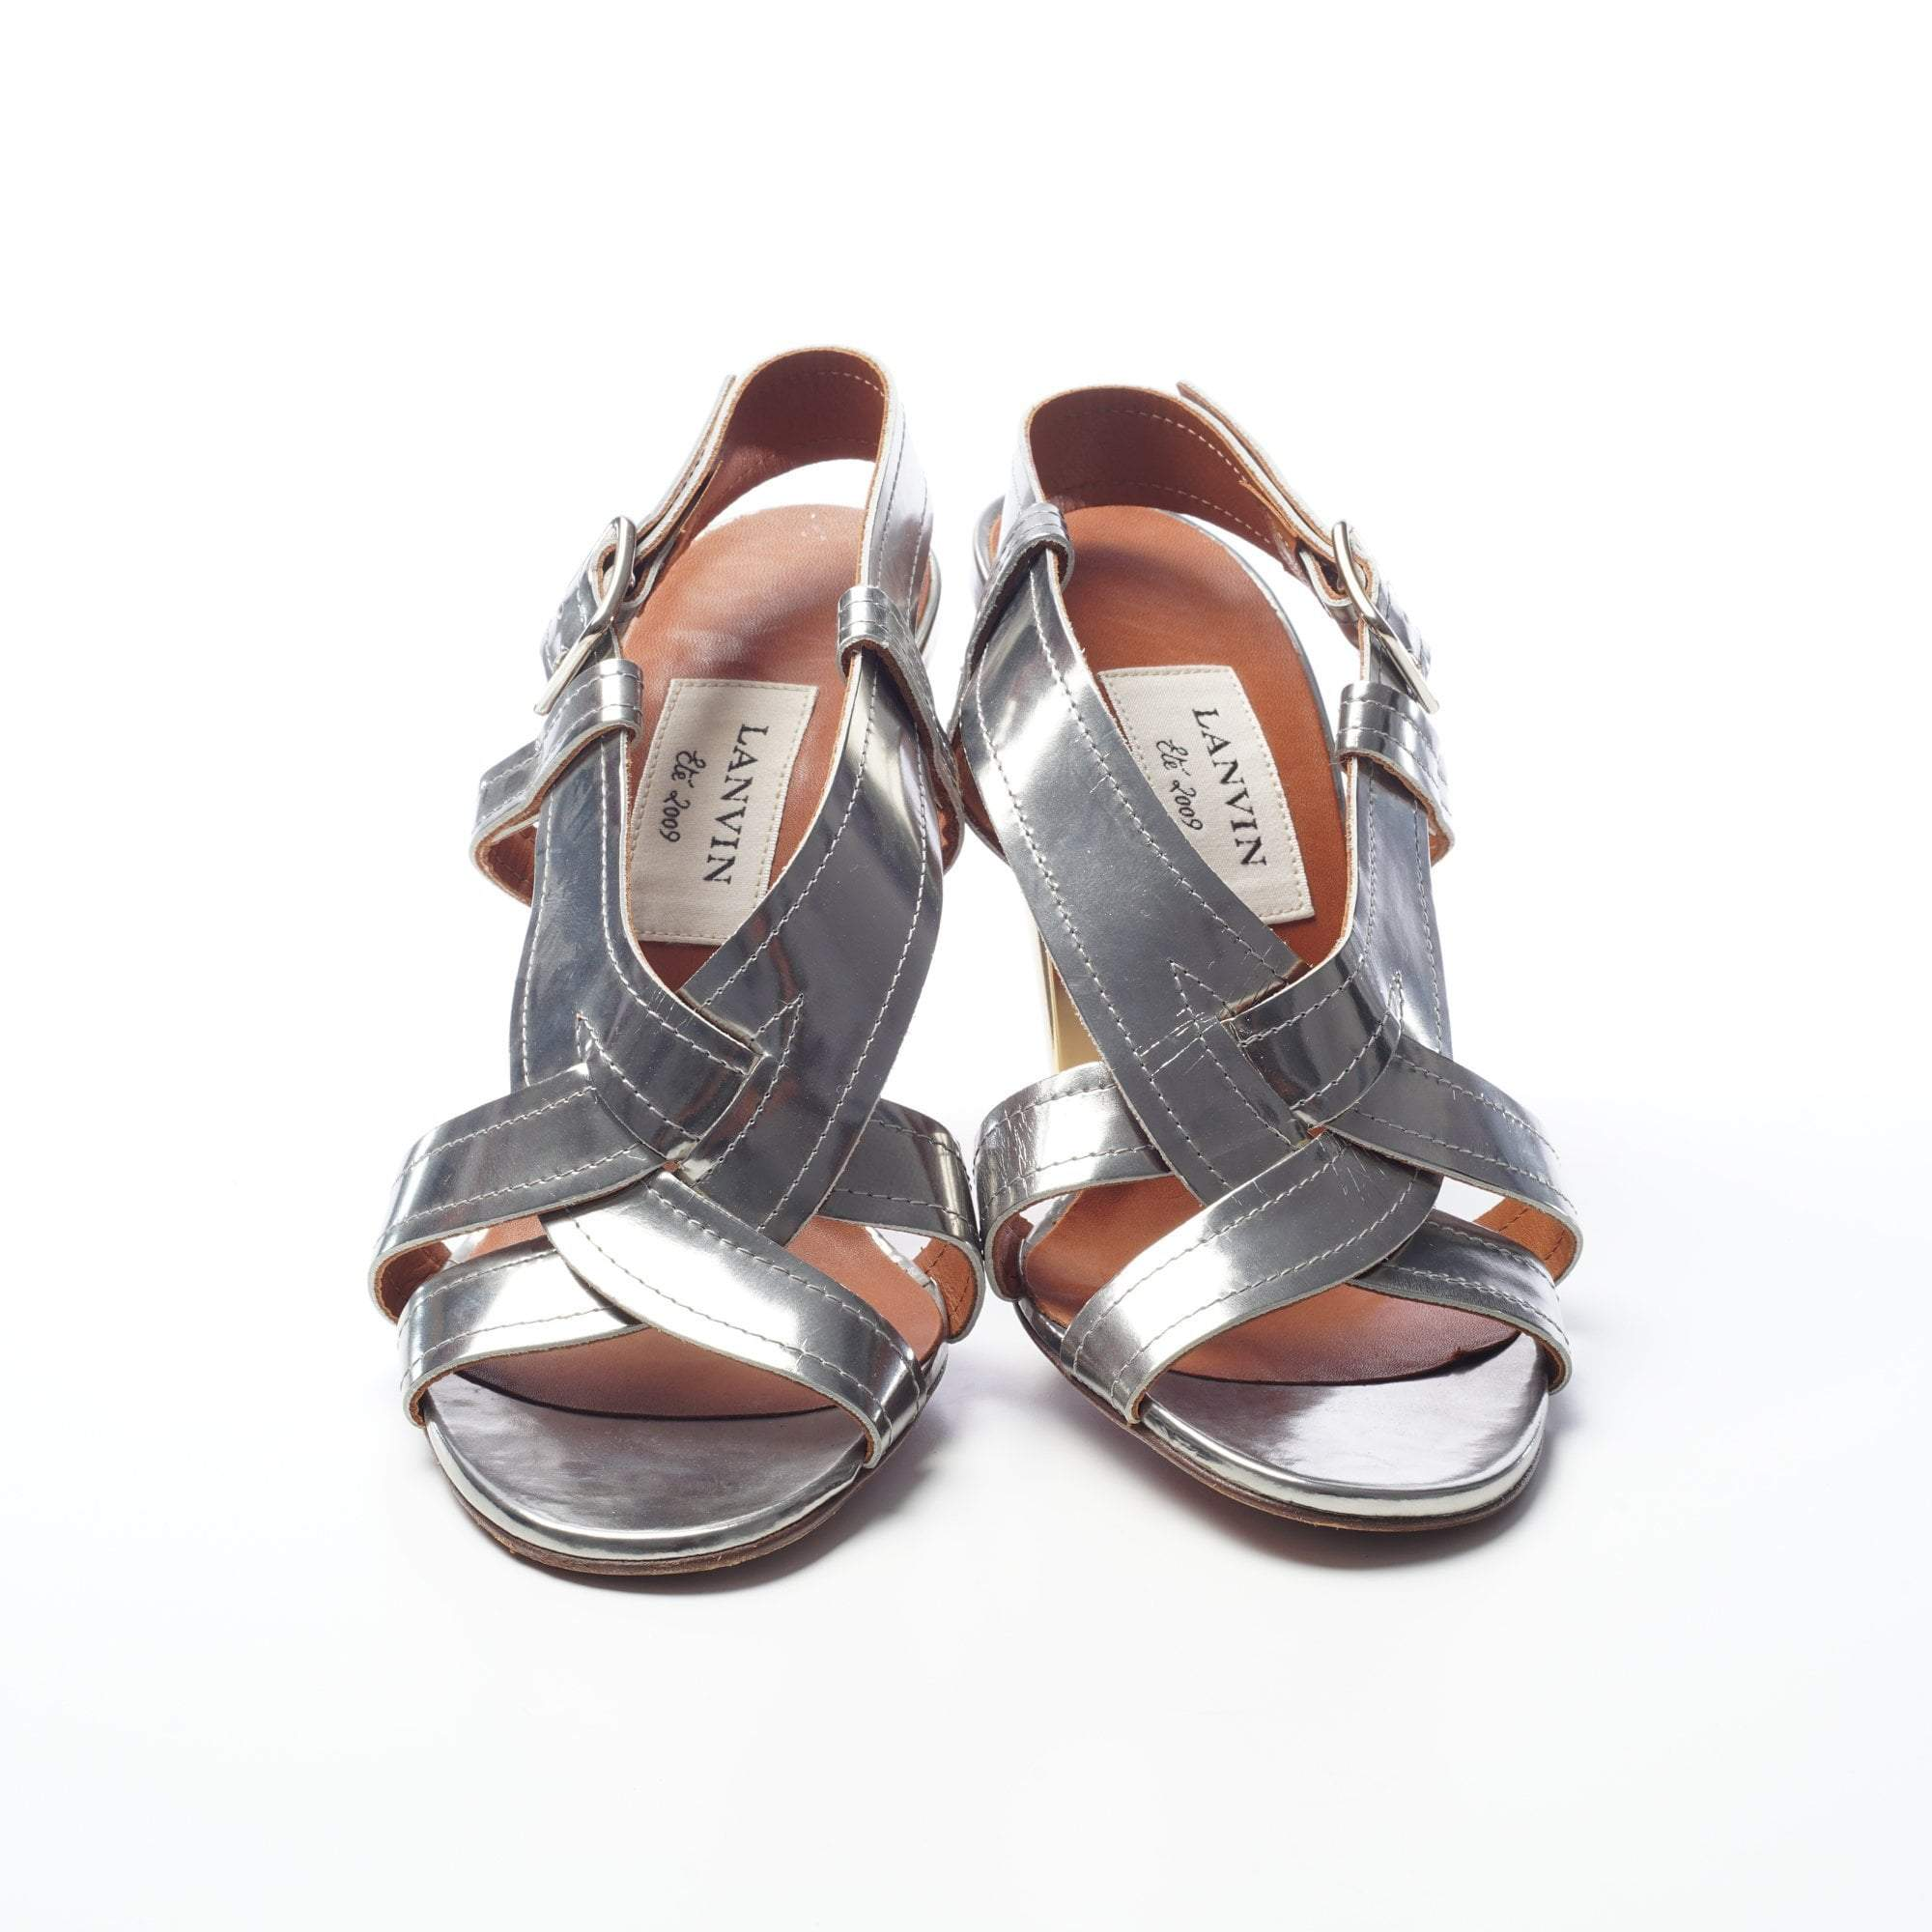 Lanvin Silver Metallic Patent Leather Strappy Cone Heel Sandal